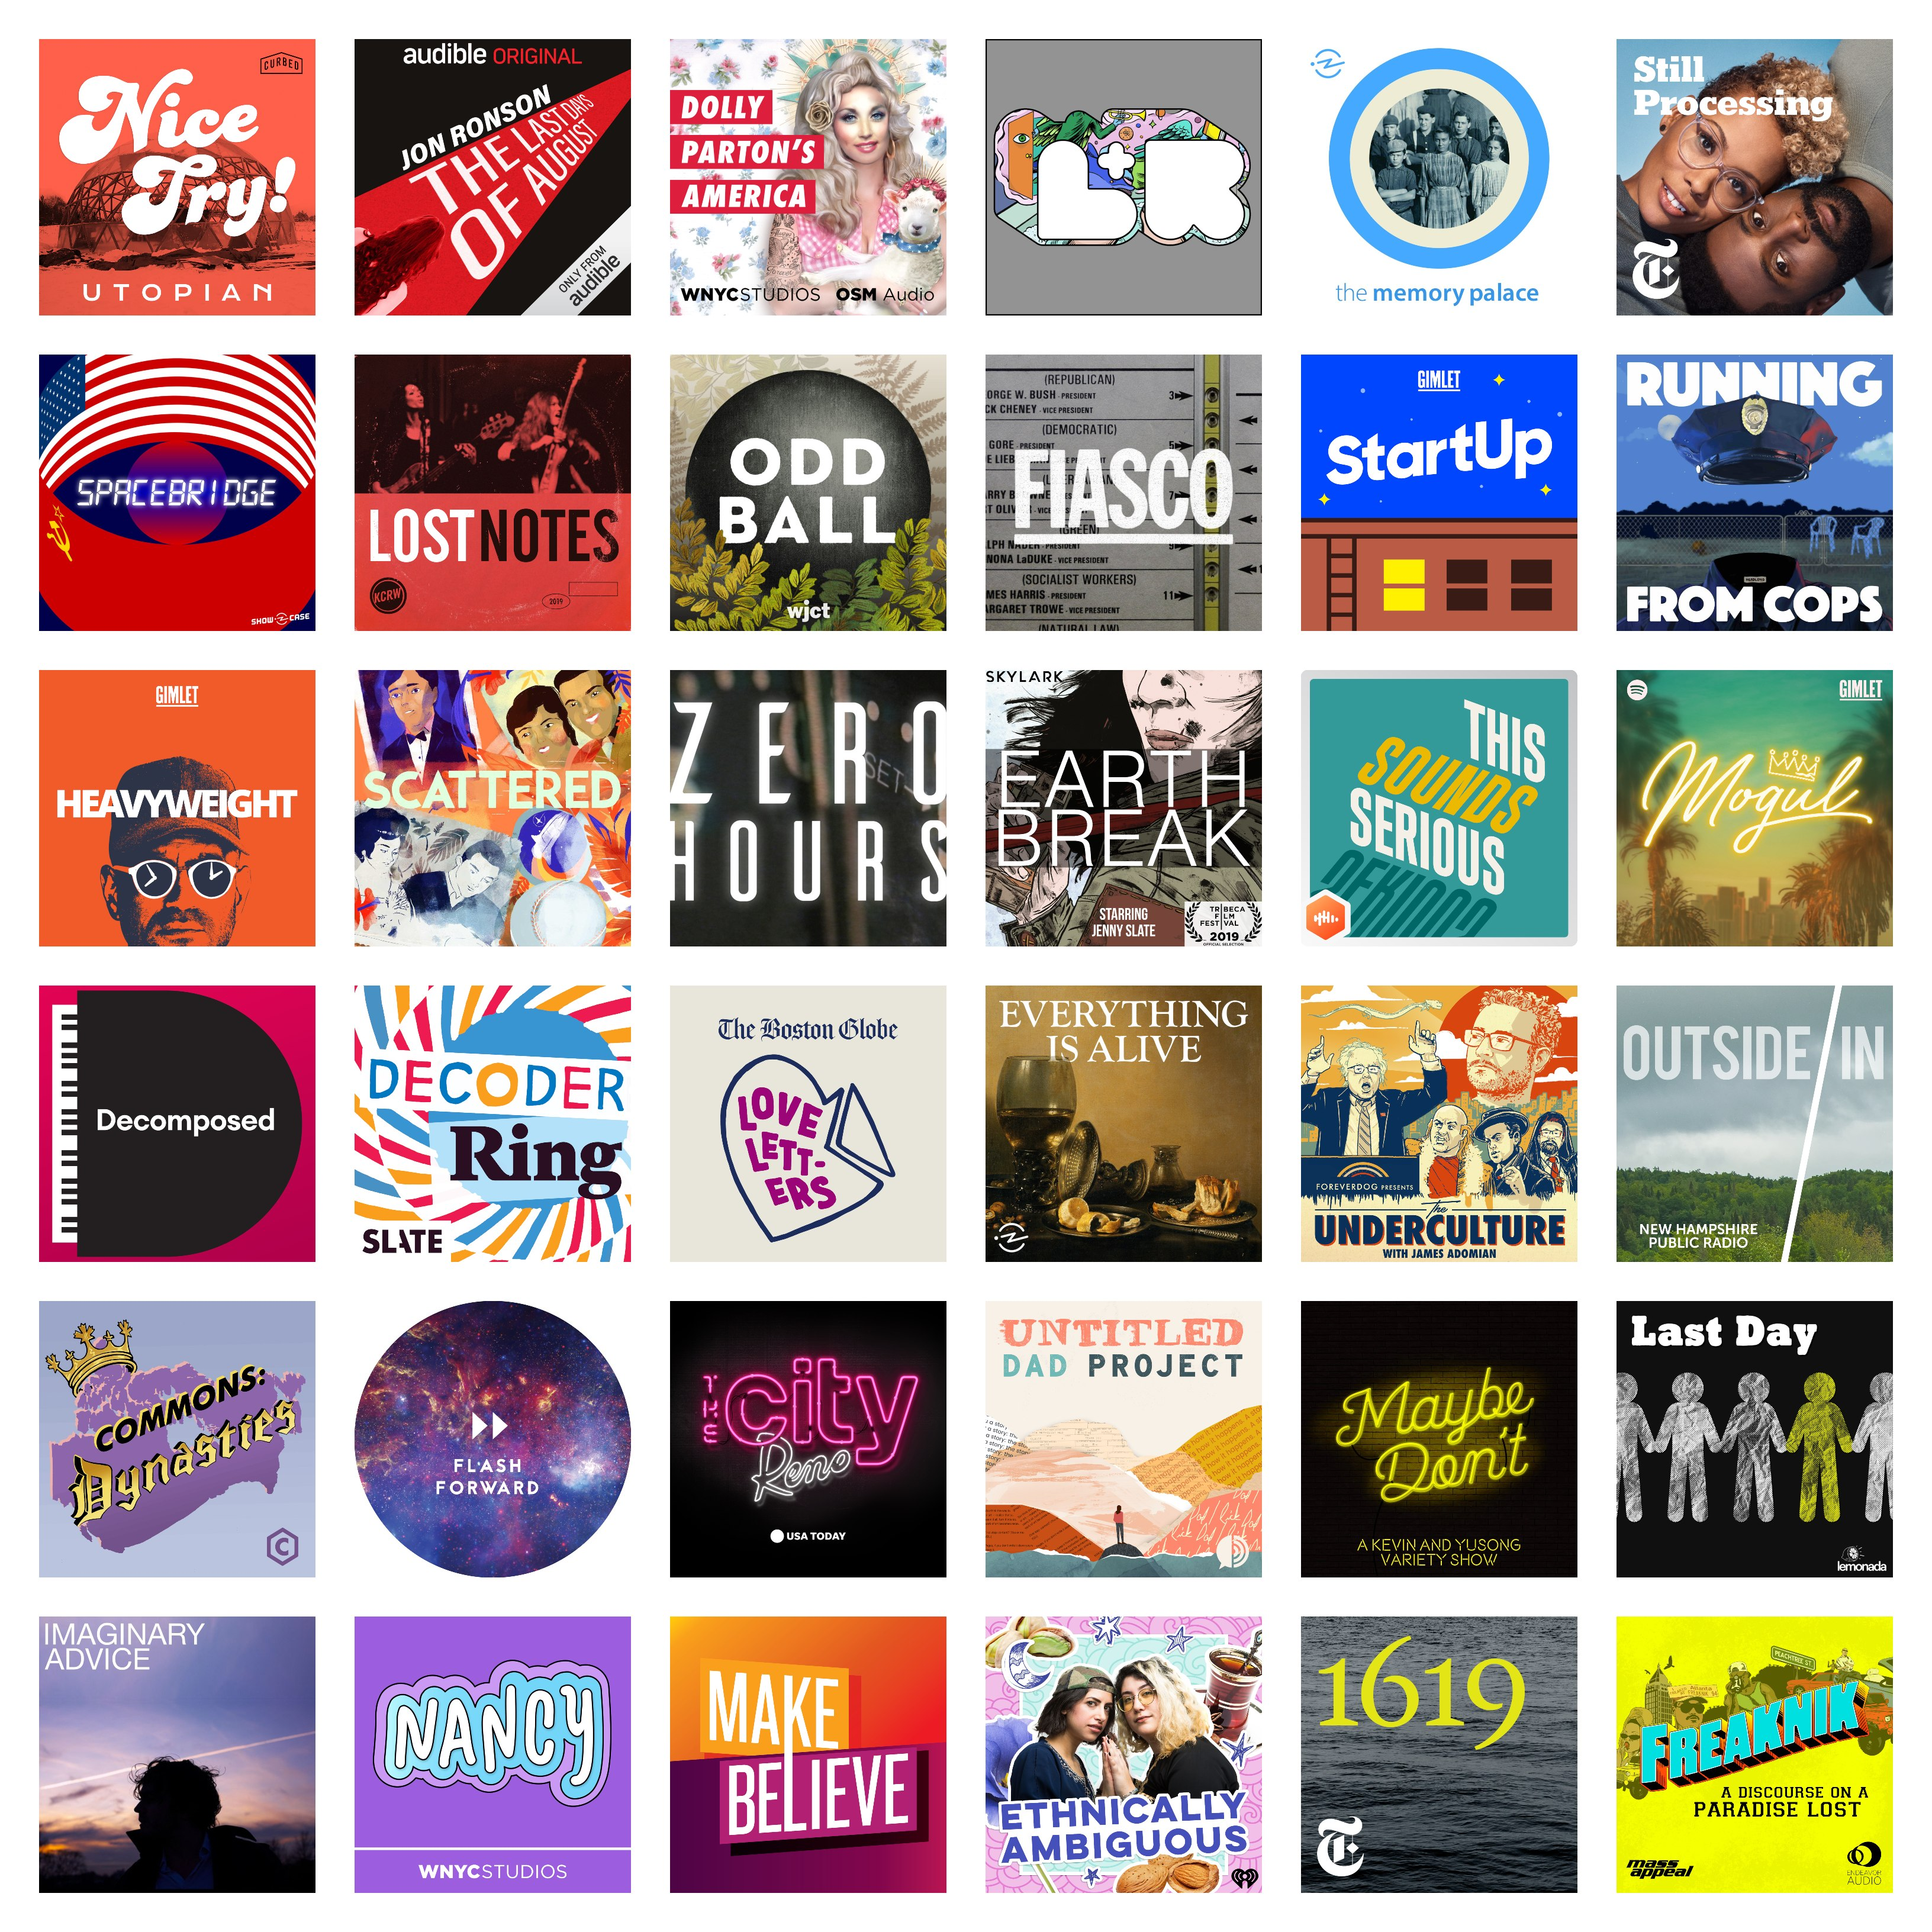 Best Podcasts 2021 Reddit Best Podcasts of 2019: The 50 Episodes to Listen To | IndieWire